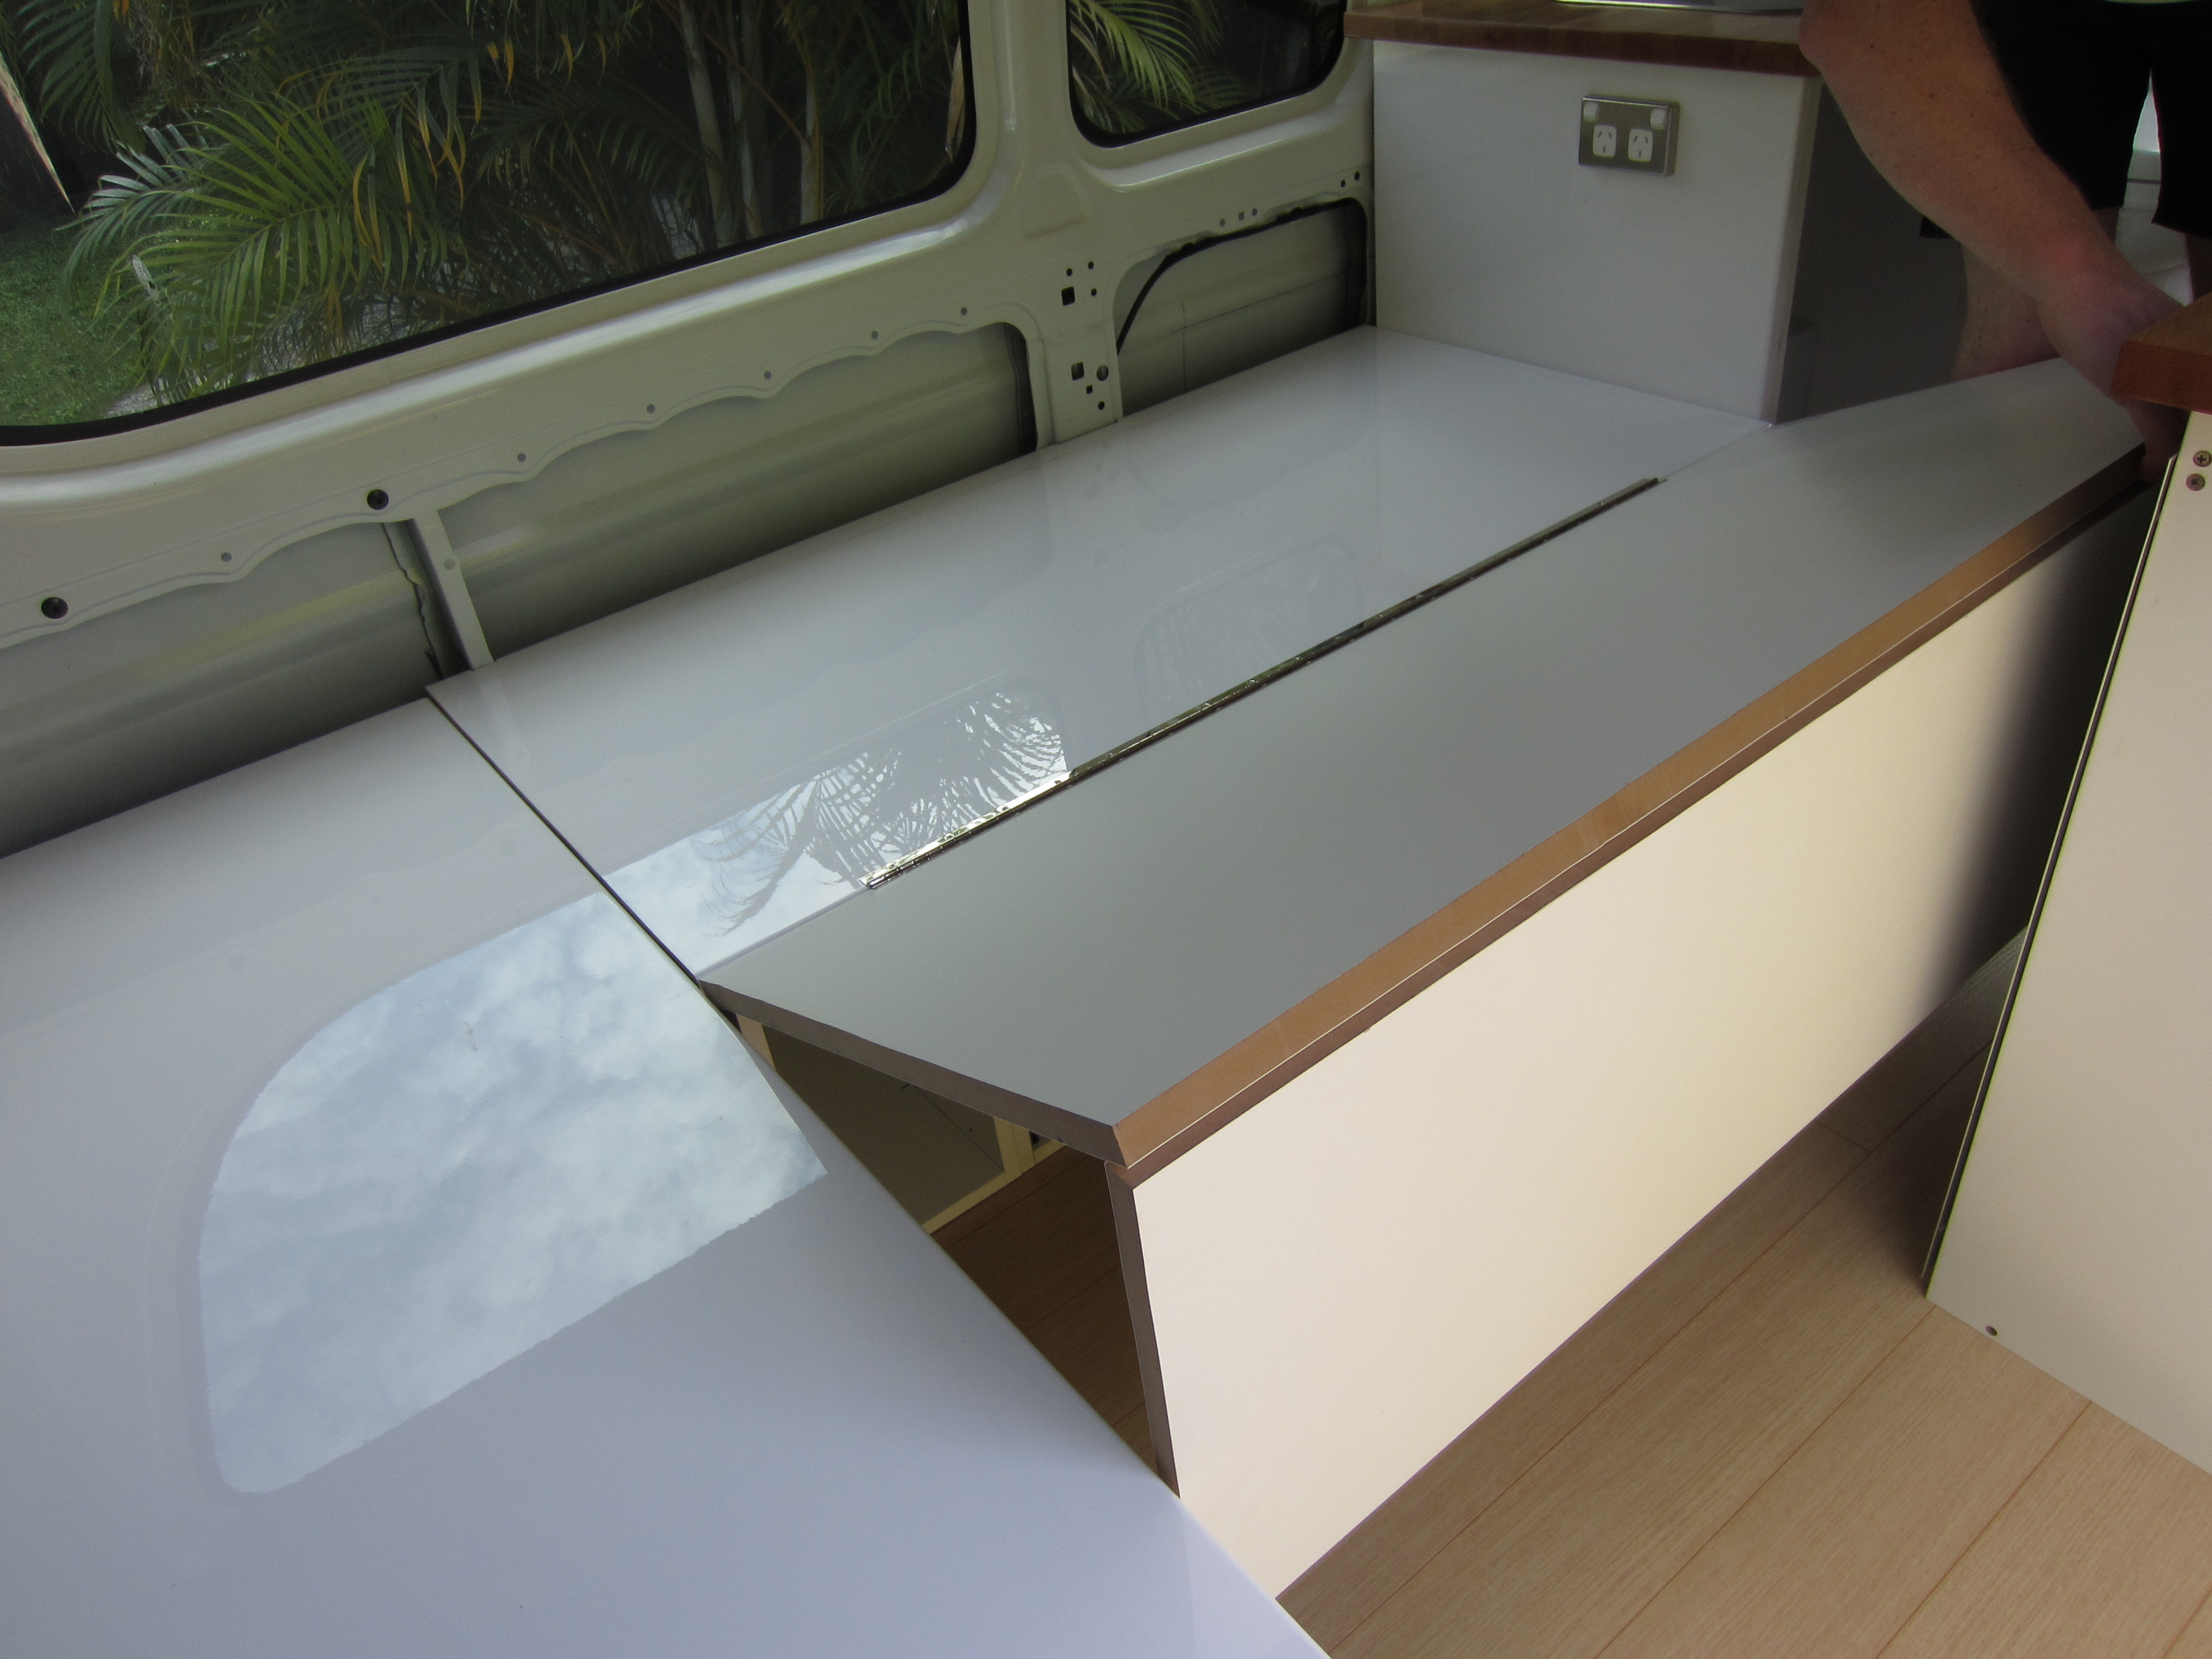 Best ideas about Campervan Beds DIY . Save or Pin campervan bed Now.